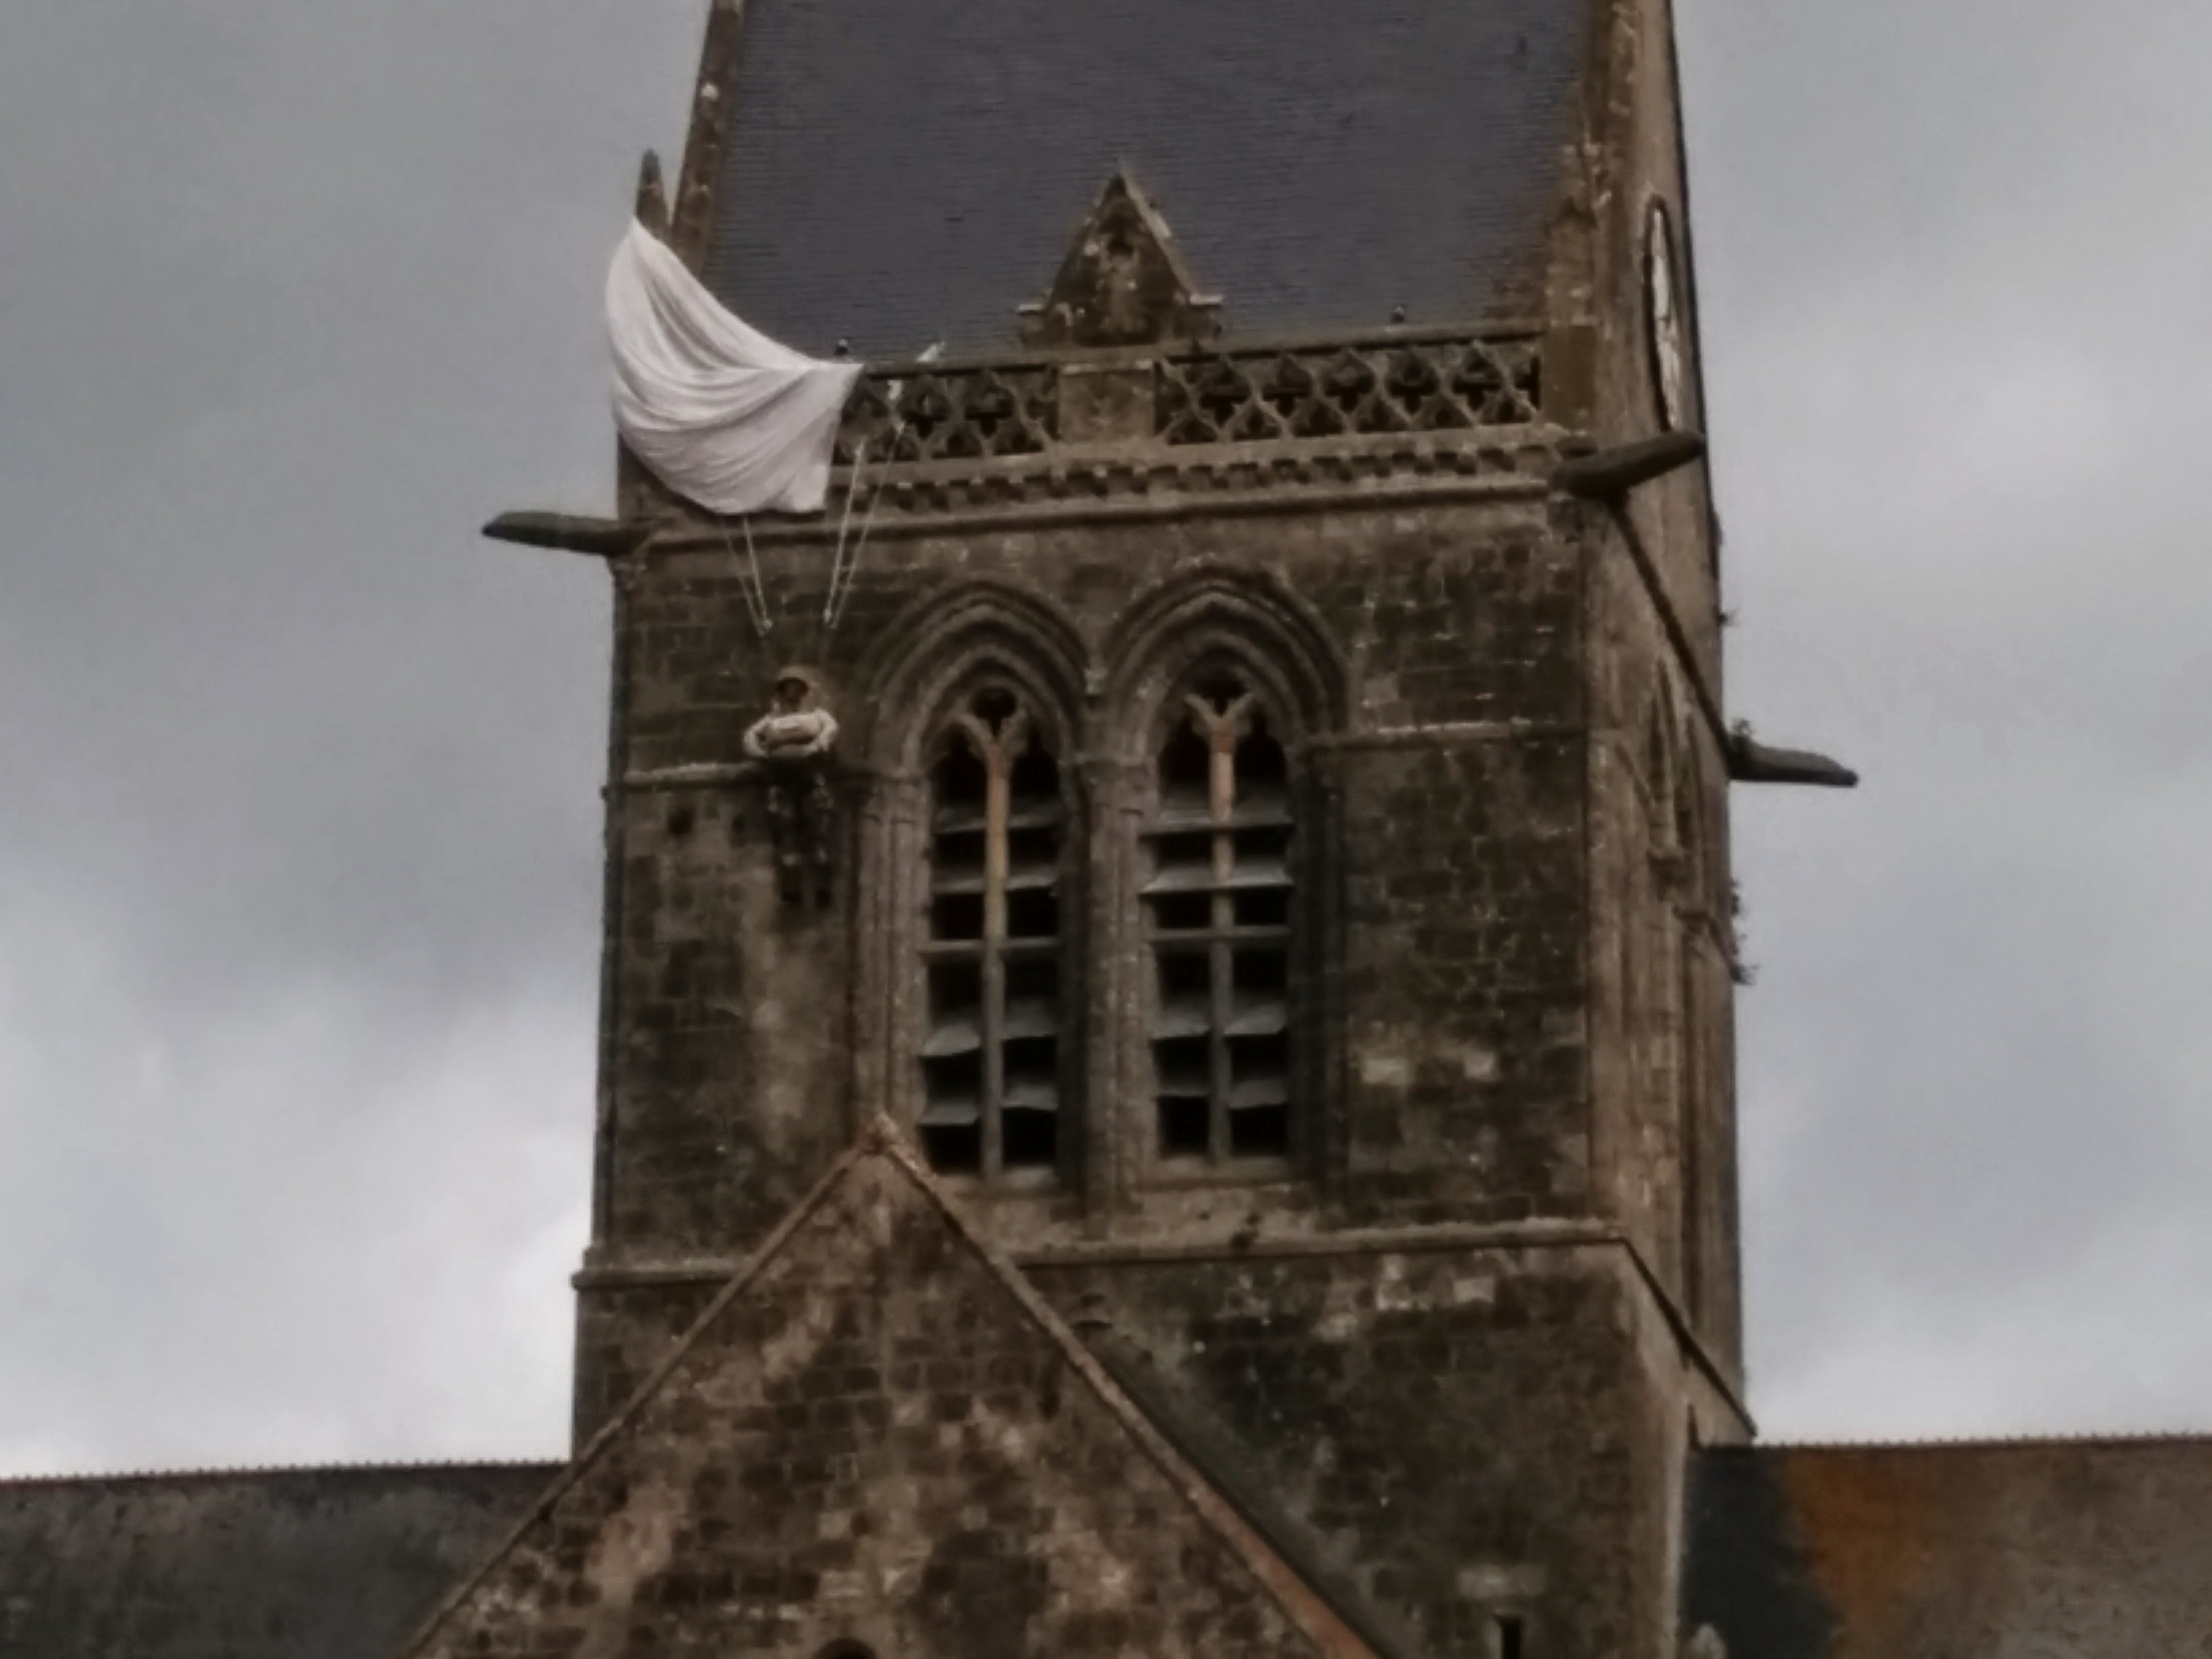 John Steele, a paratrooper of the 82nd Airborne, was stuck in the steeple of Sainte-Mère-'Église for two hours. He survived the war. Nowadays a dummy hanging in the church commemorates his story and the liberation of the town. Picture taken by me